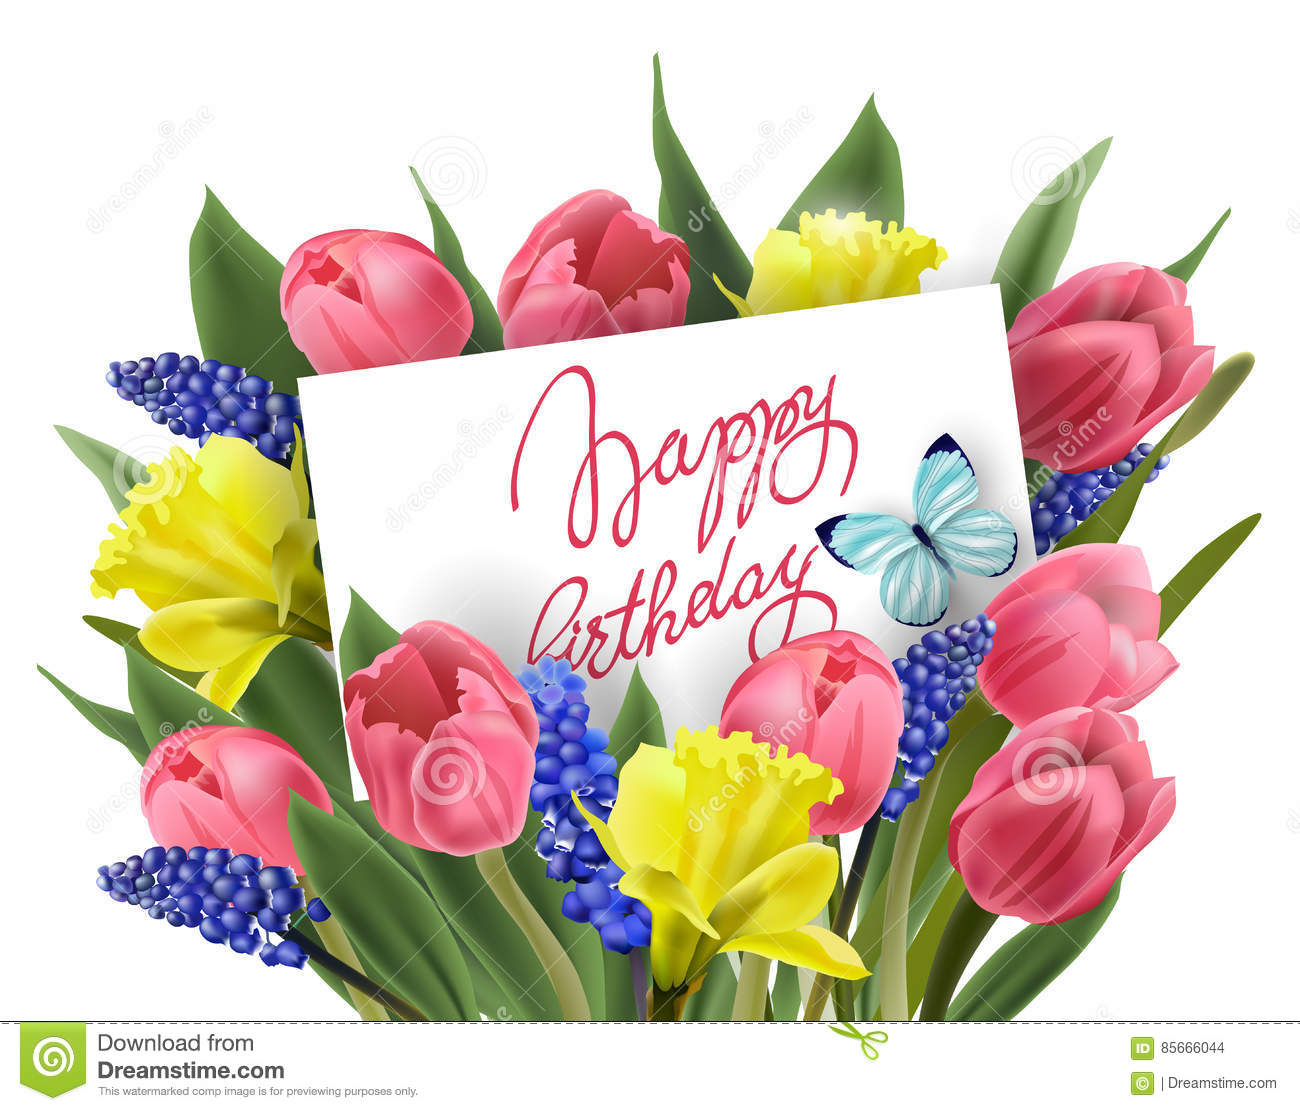 Happy birthday greeting card with bouquet of spring flowers tulips download happy birthday greeting card with bouquet of spring flowers tulips daffodils muscari izmirmasajfo